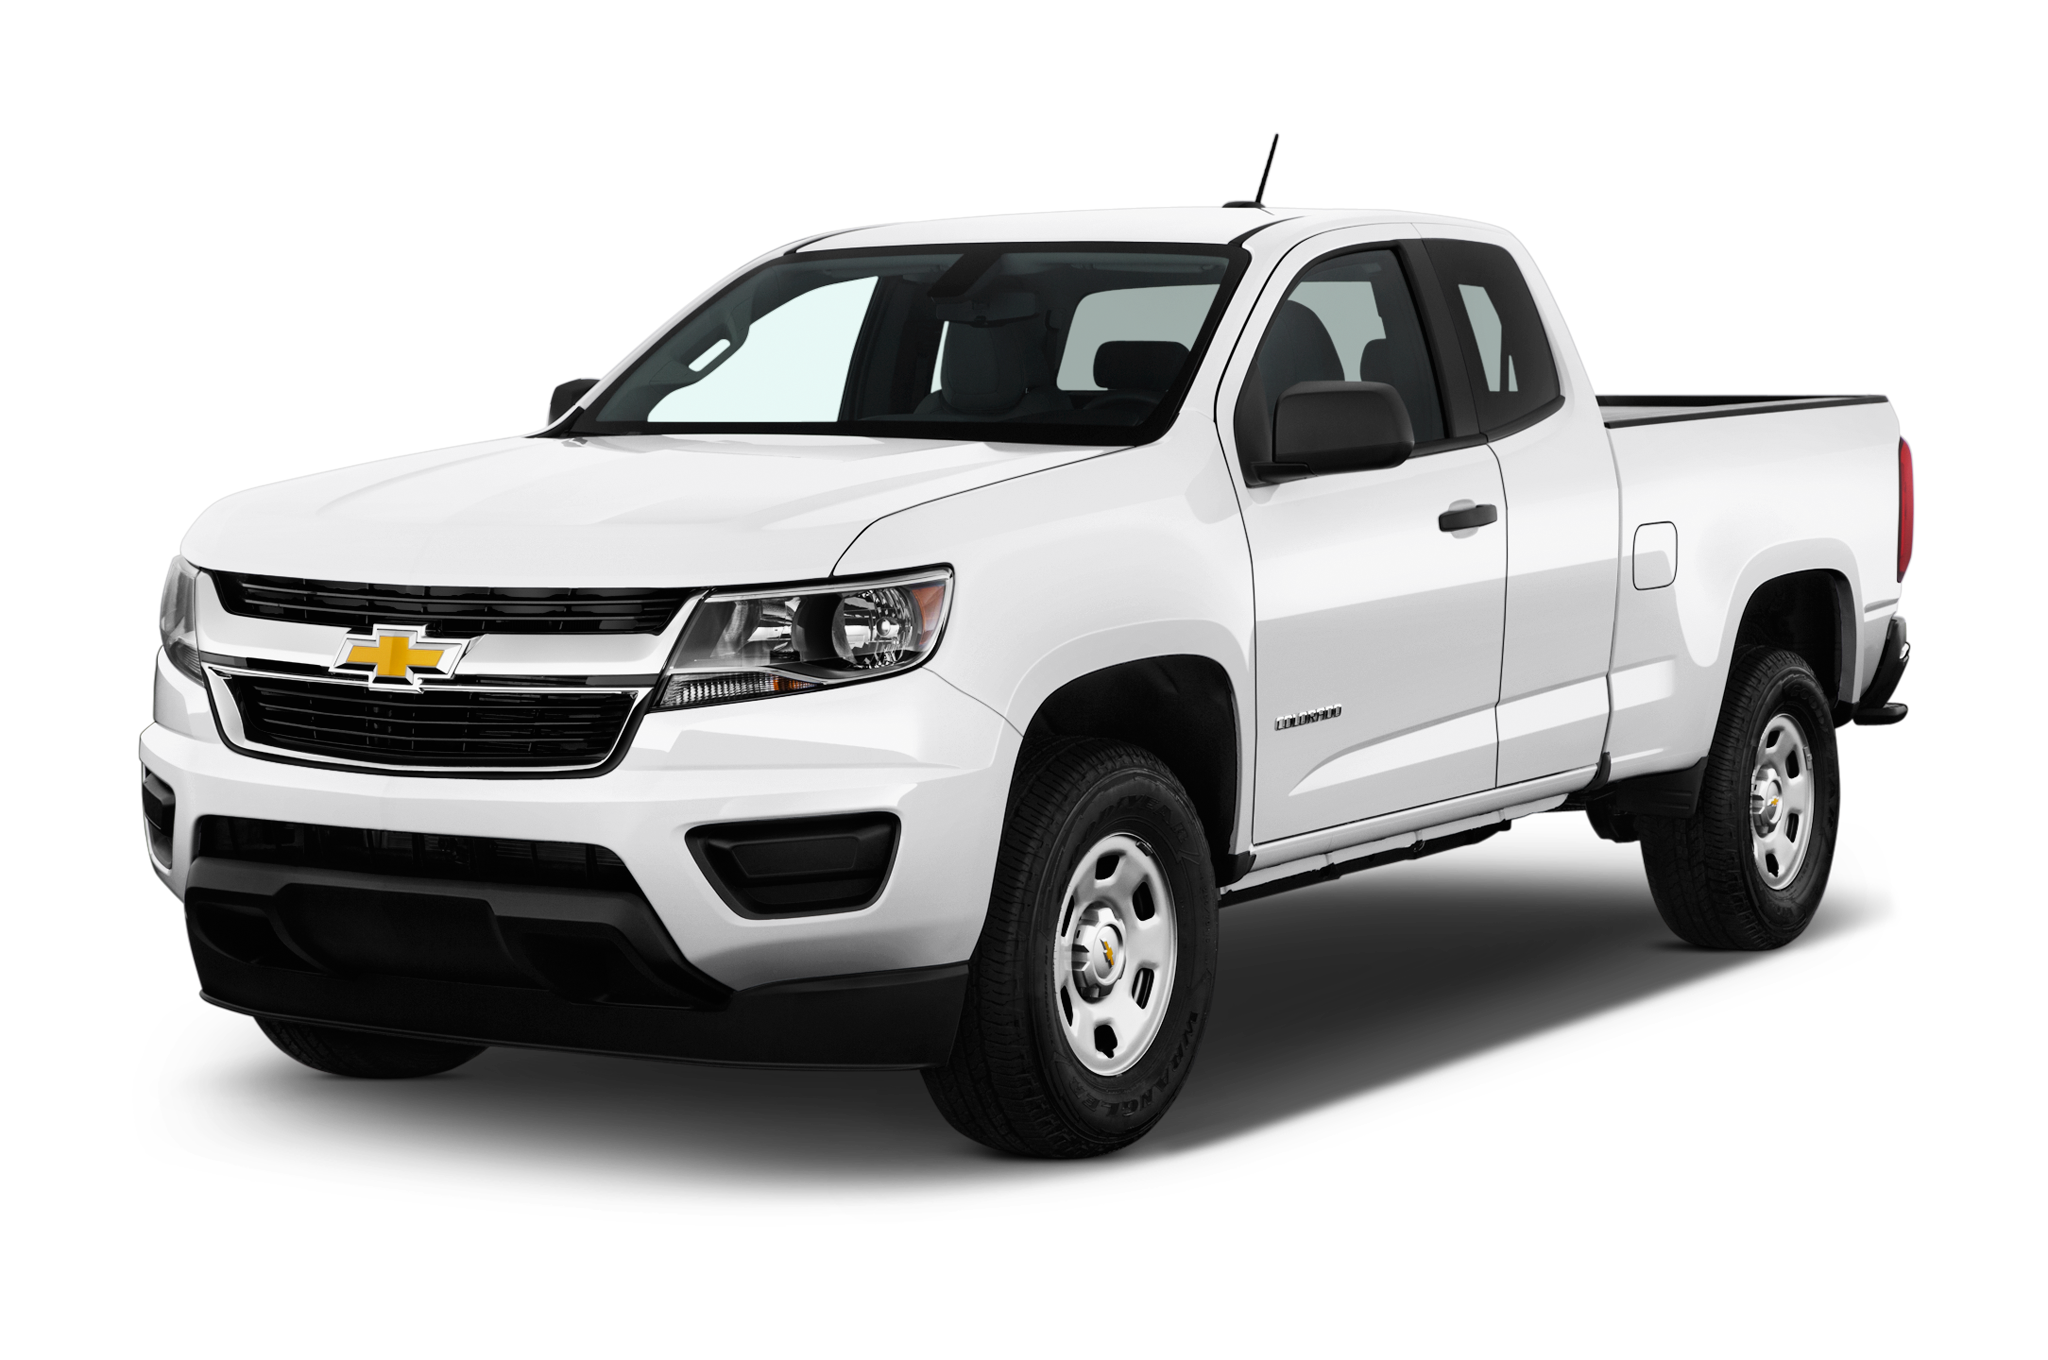 2017 chevrolet colorado wt extended cab specs and features. Black Bedroom Furniture Sets. Home Design Ideas